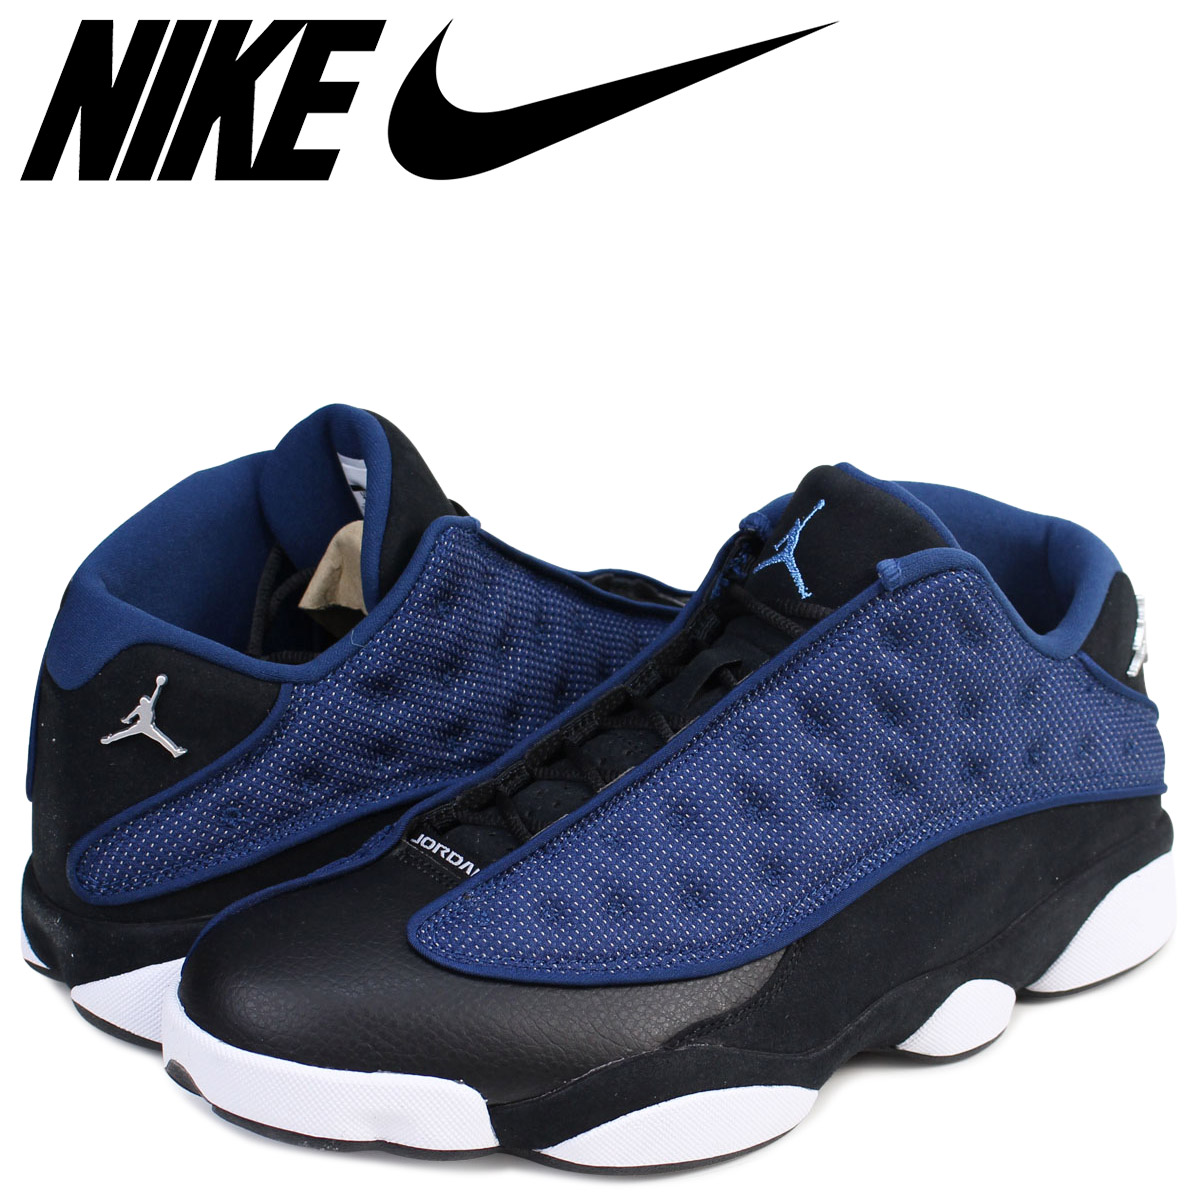 best website 4c383 5ba70 ... white metallic silver midnight navy ice blue eeefa 5cdbf  coupon code  for nike nike air jordan 13 nostalgic low sneakers air jordan xiii retro low